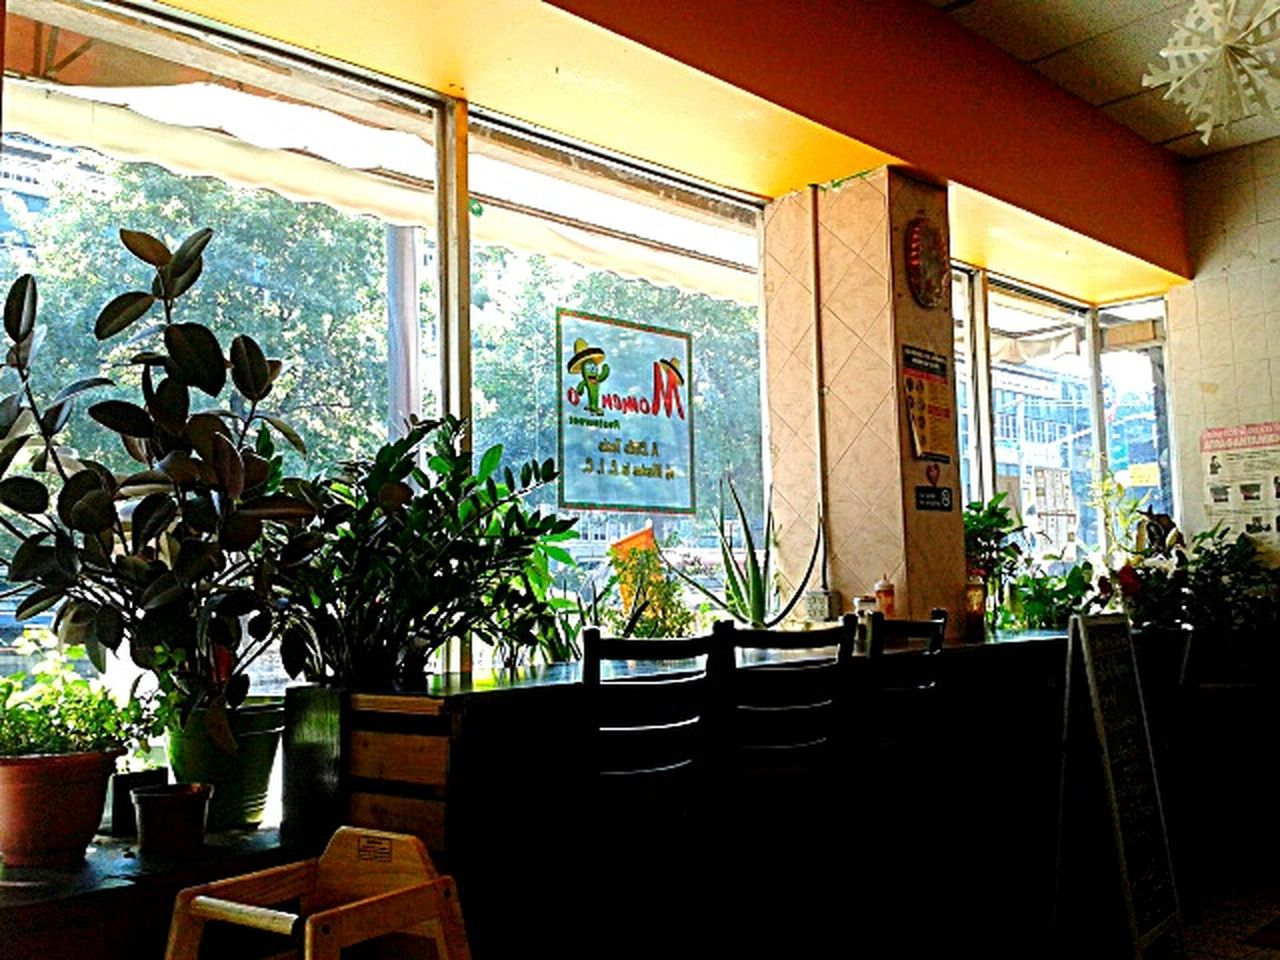 chair, indoors, window, table, potted plant, architecture, no people, architectural column, built structure, growth, plant, day, tree, nature